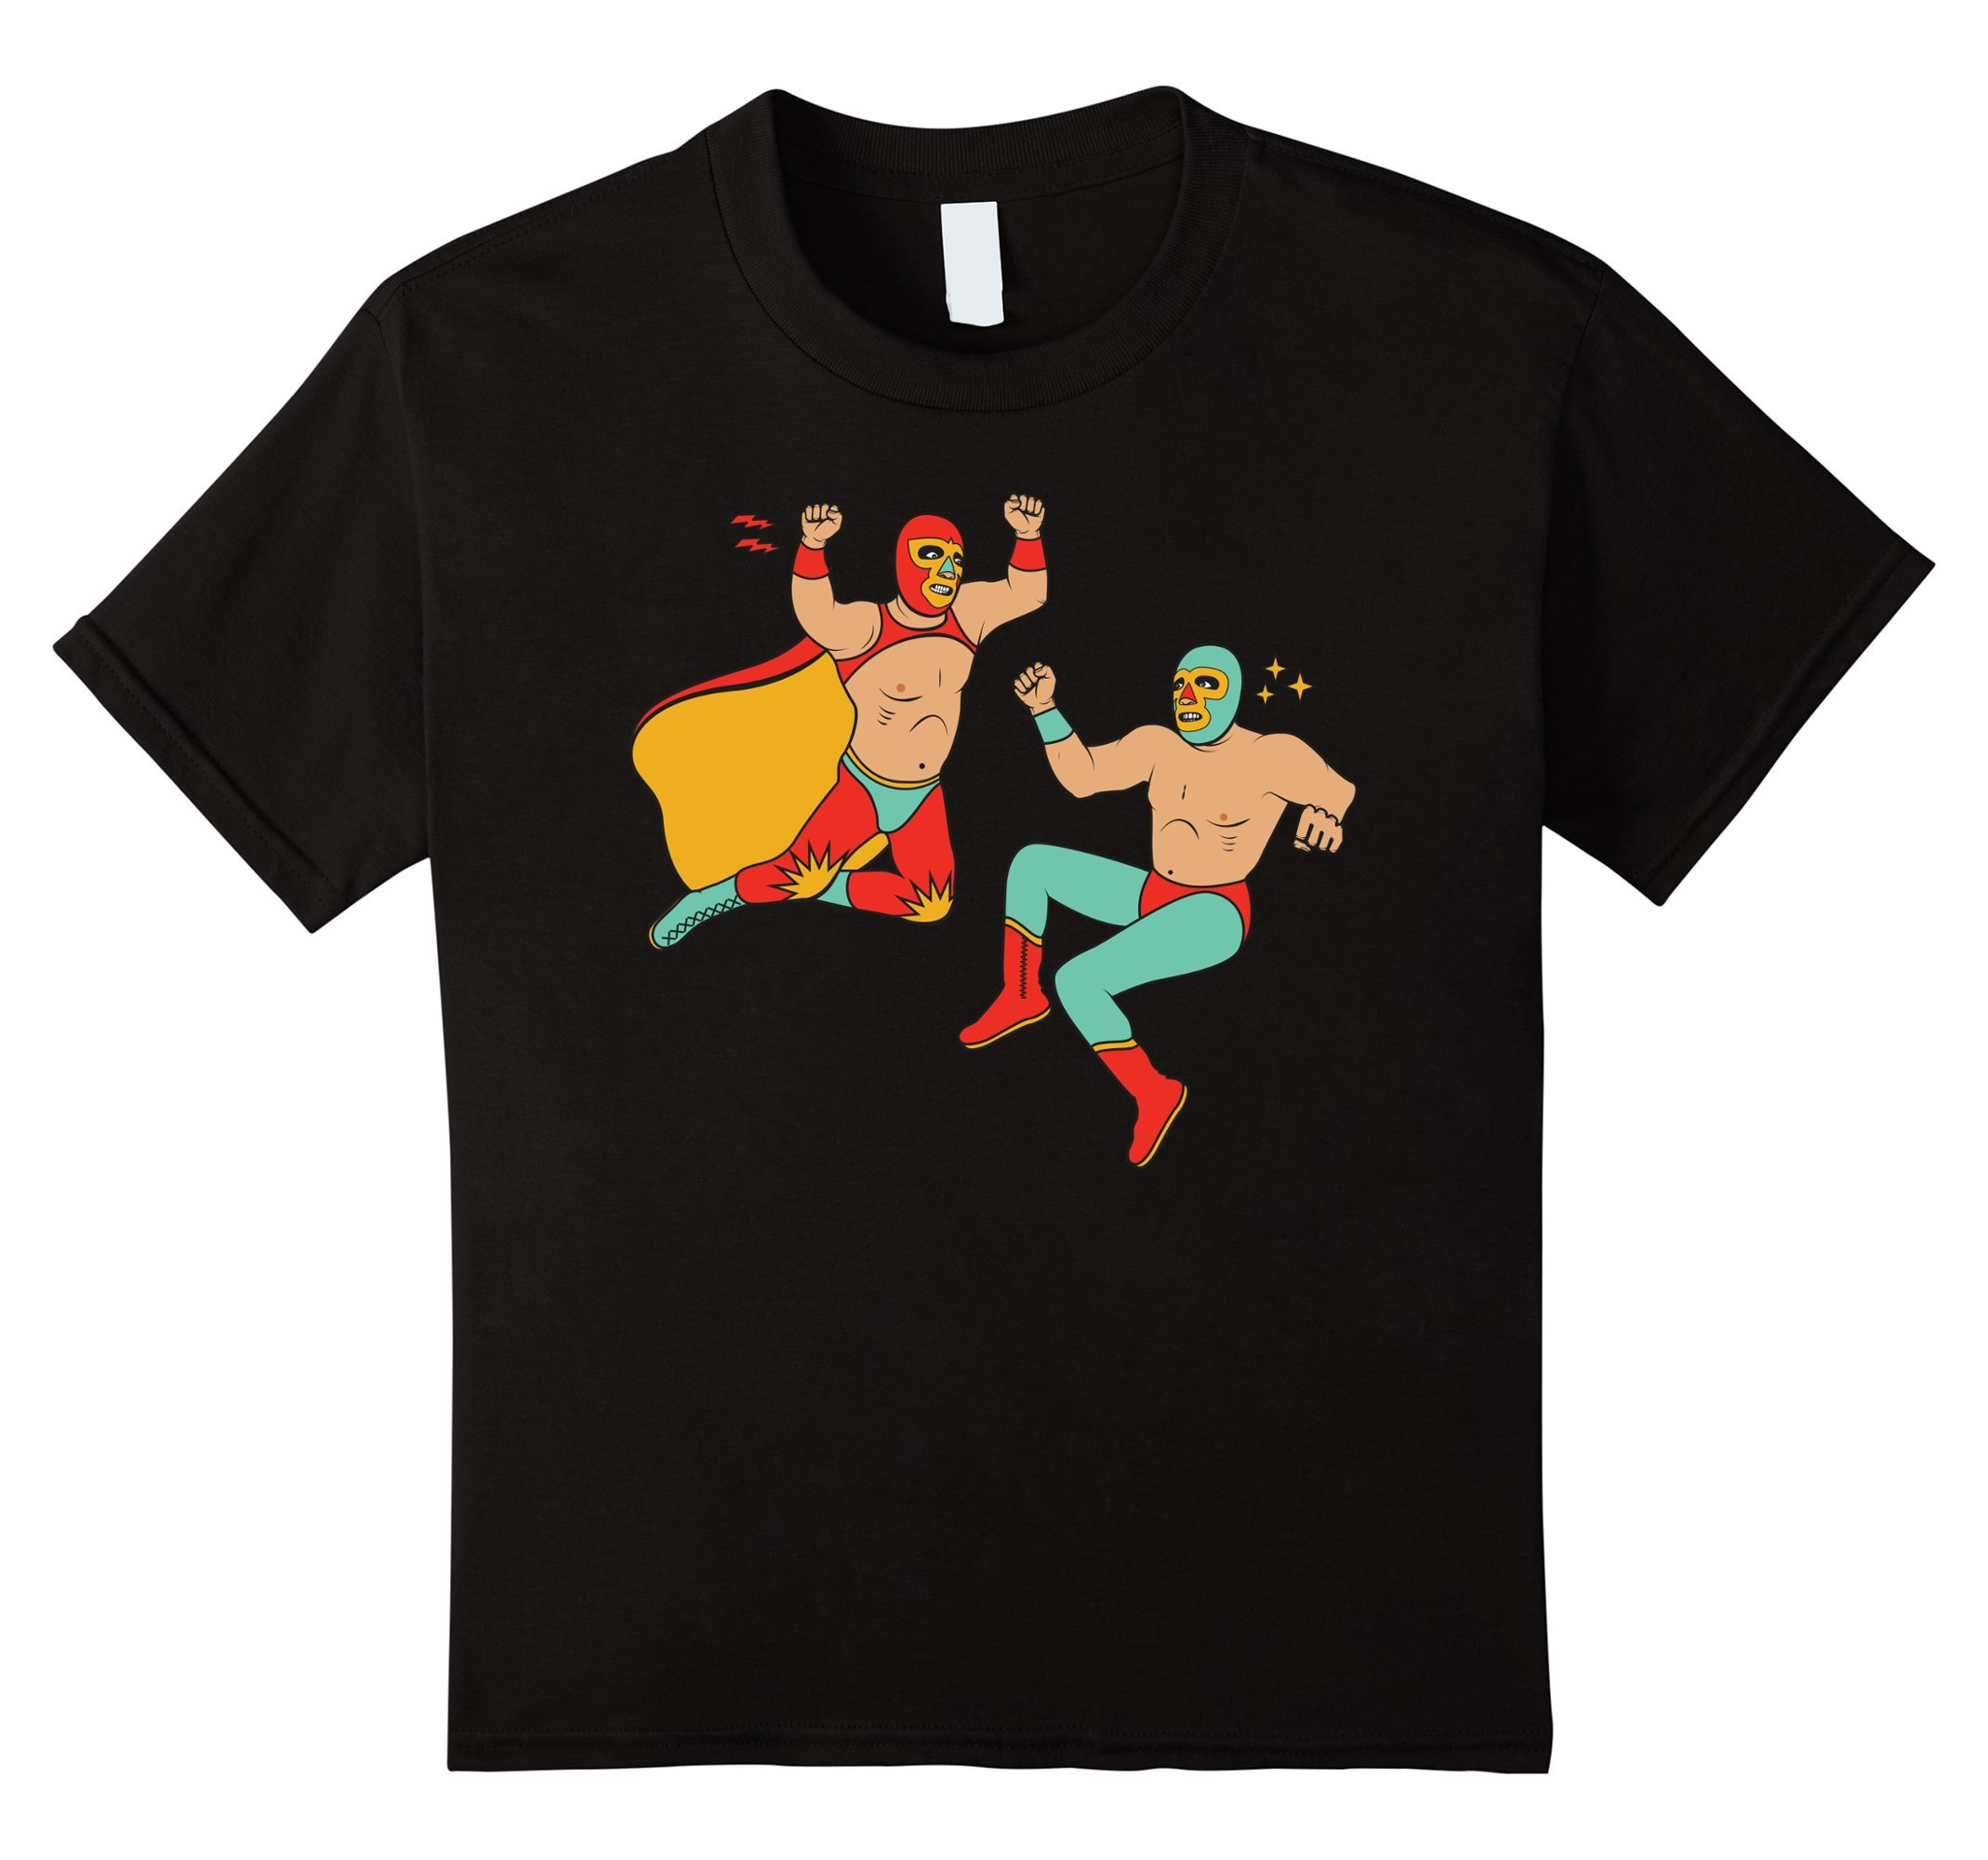 Kids Lucha Libre Tshirt - Luchador - Mexican Wrestling Mask Tee 8 Black by Lucha Libre